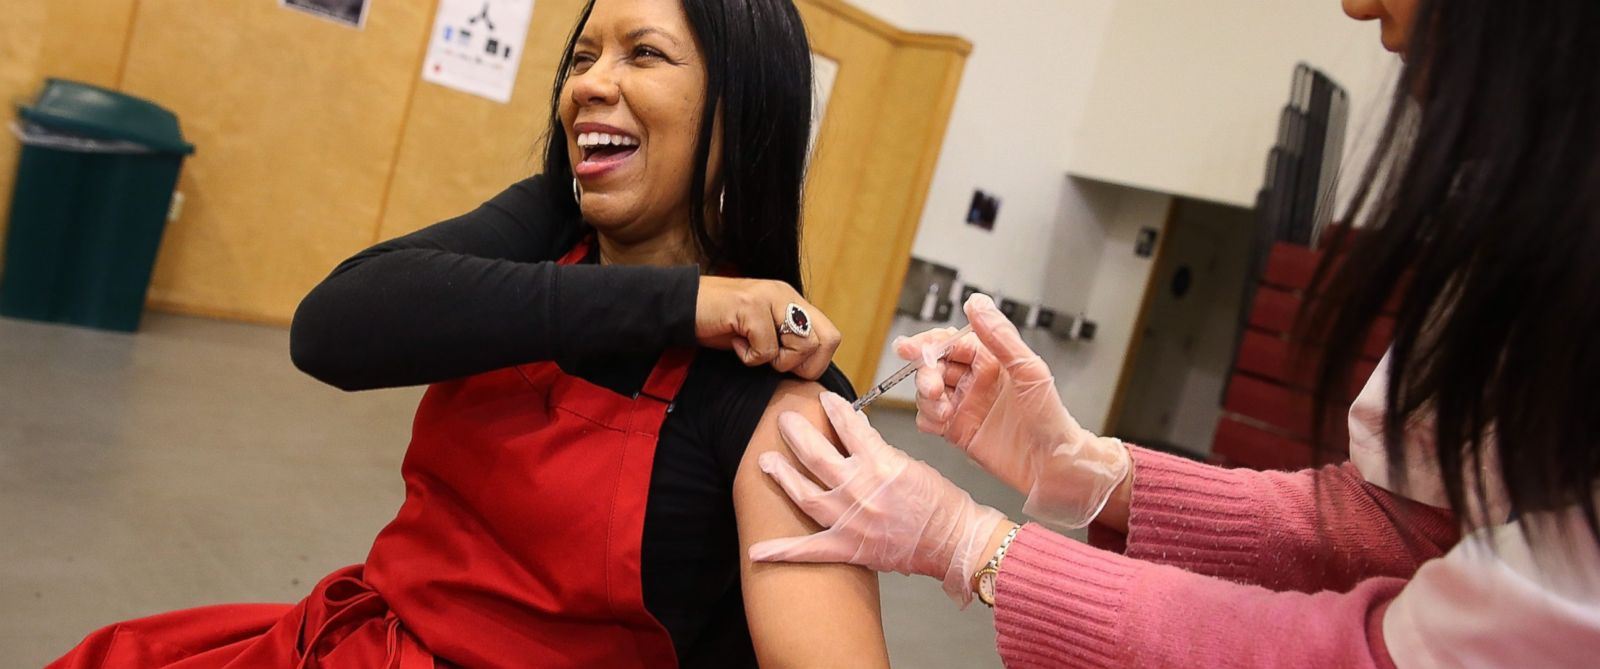 PHOTO: Cynthia Foreman receives a free flu shot from a Walgreens employee during a free flu shot clinic at Allen Temple Baptist Church, Dec. 19, 2014 in Oakland, California.